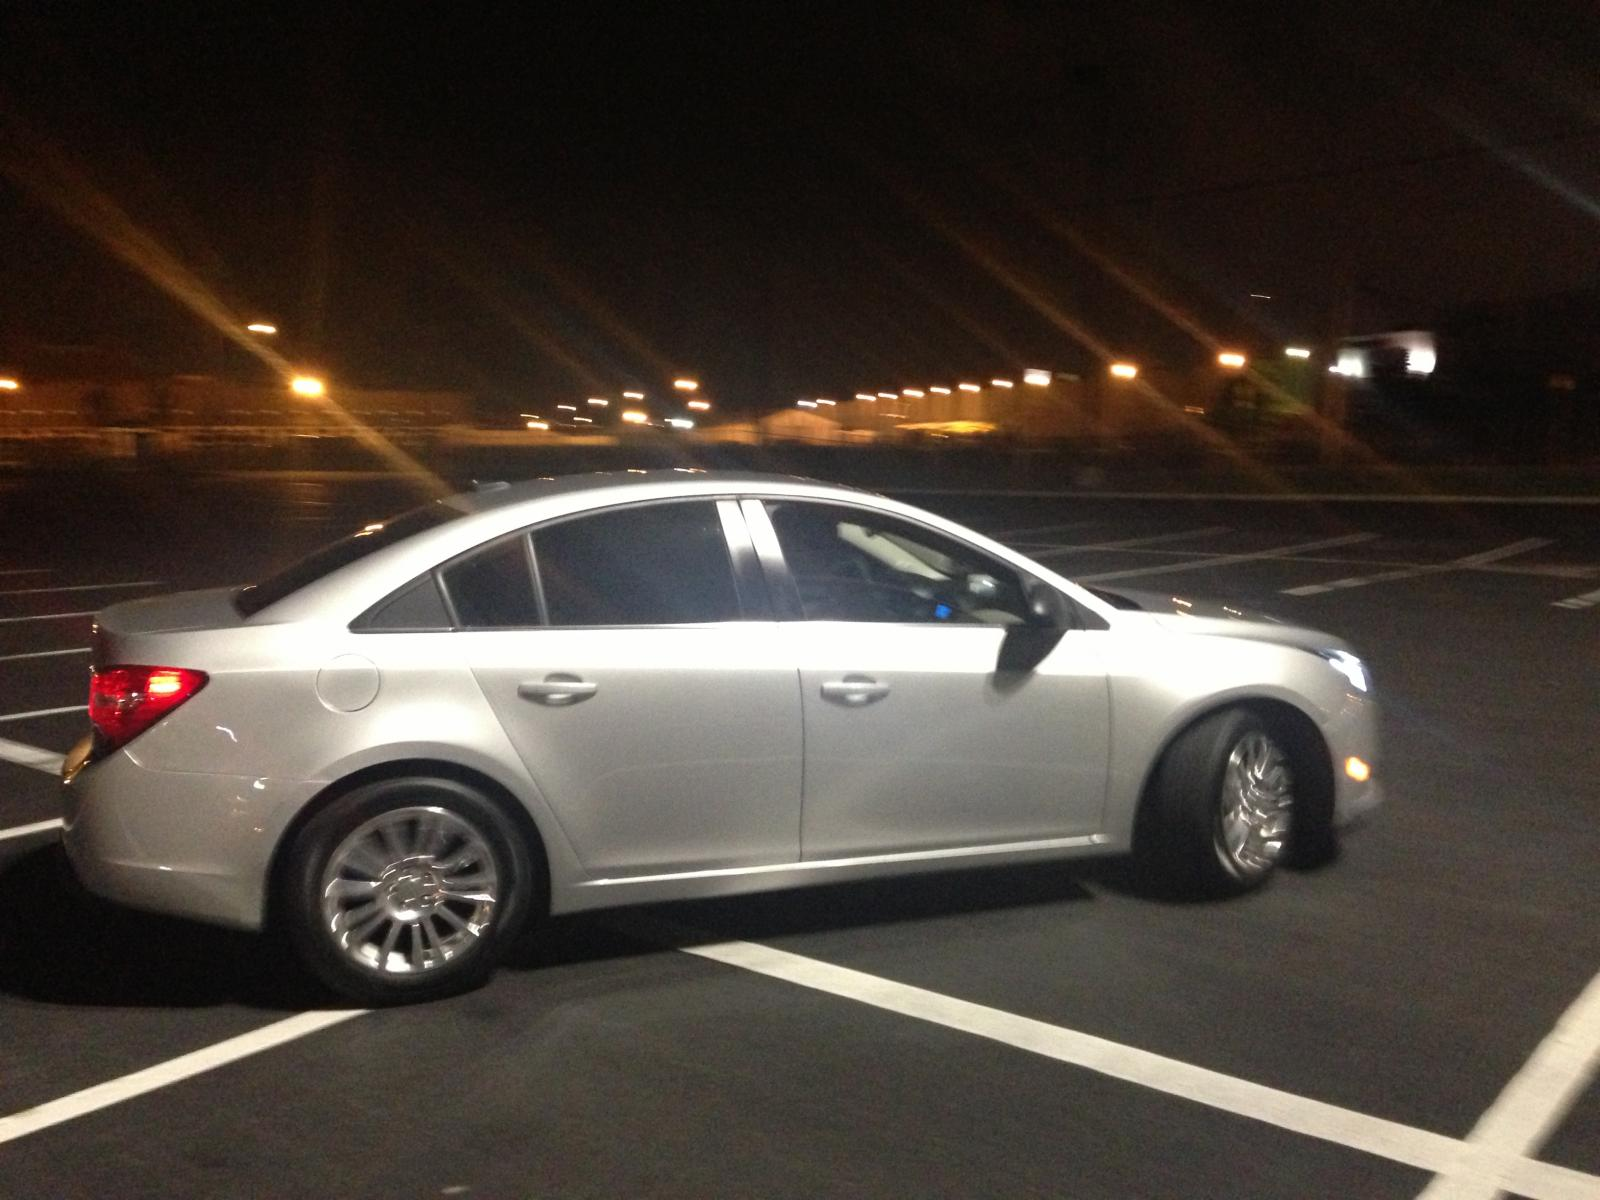 D Chevy Cruze Eco Rims Sale Trade W Tires Tpms Like New Img on Chevy Rims